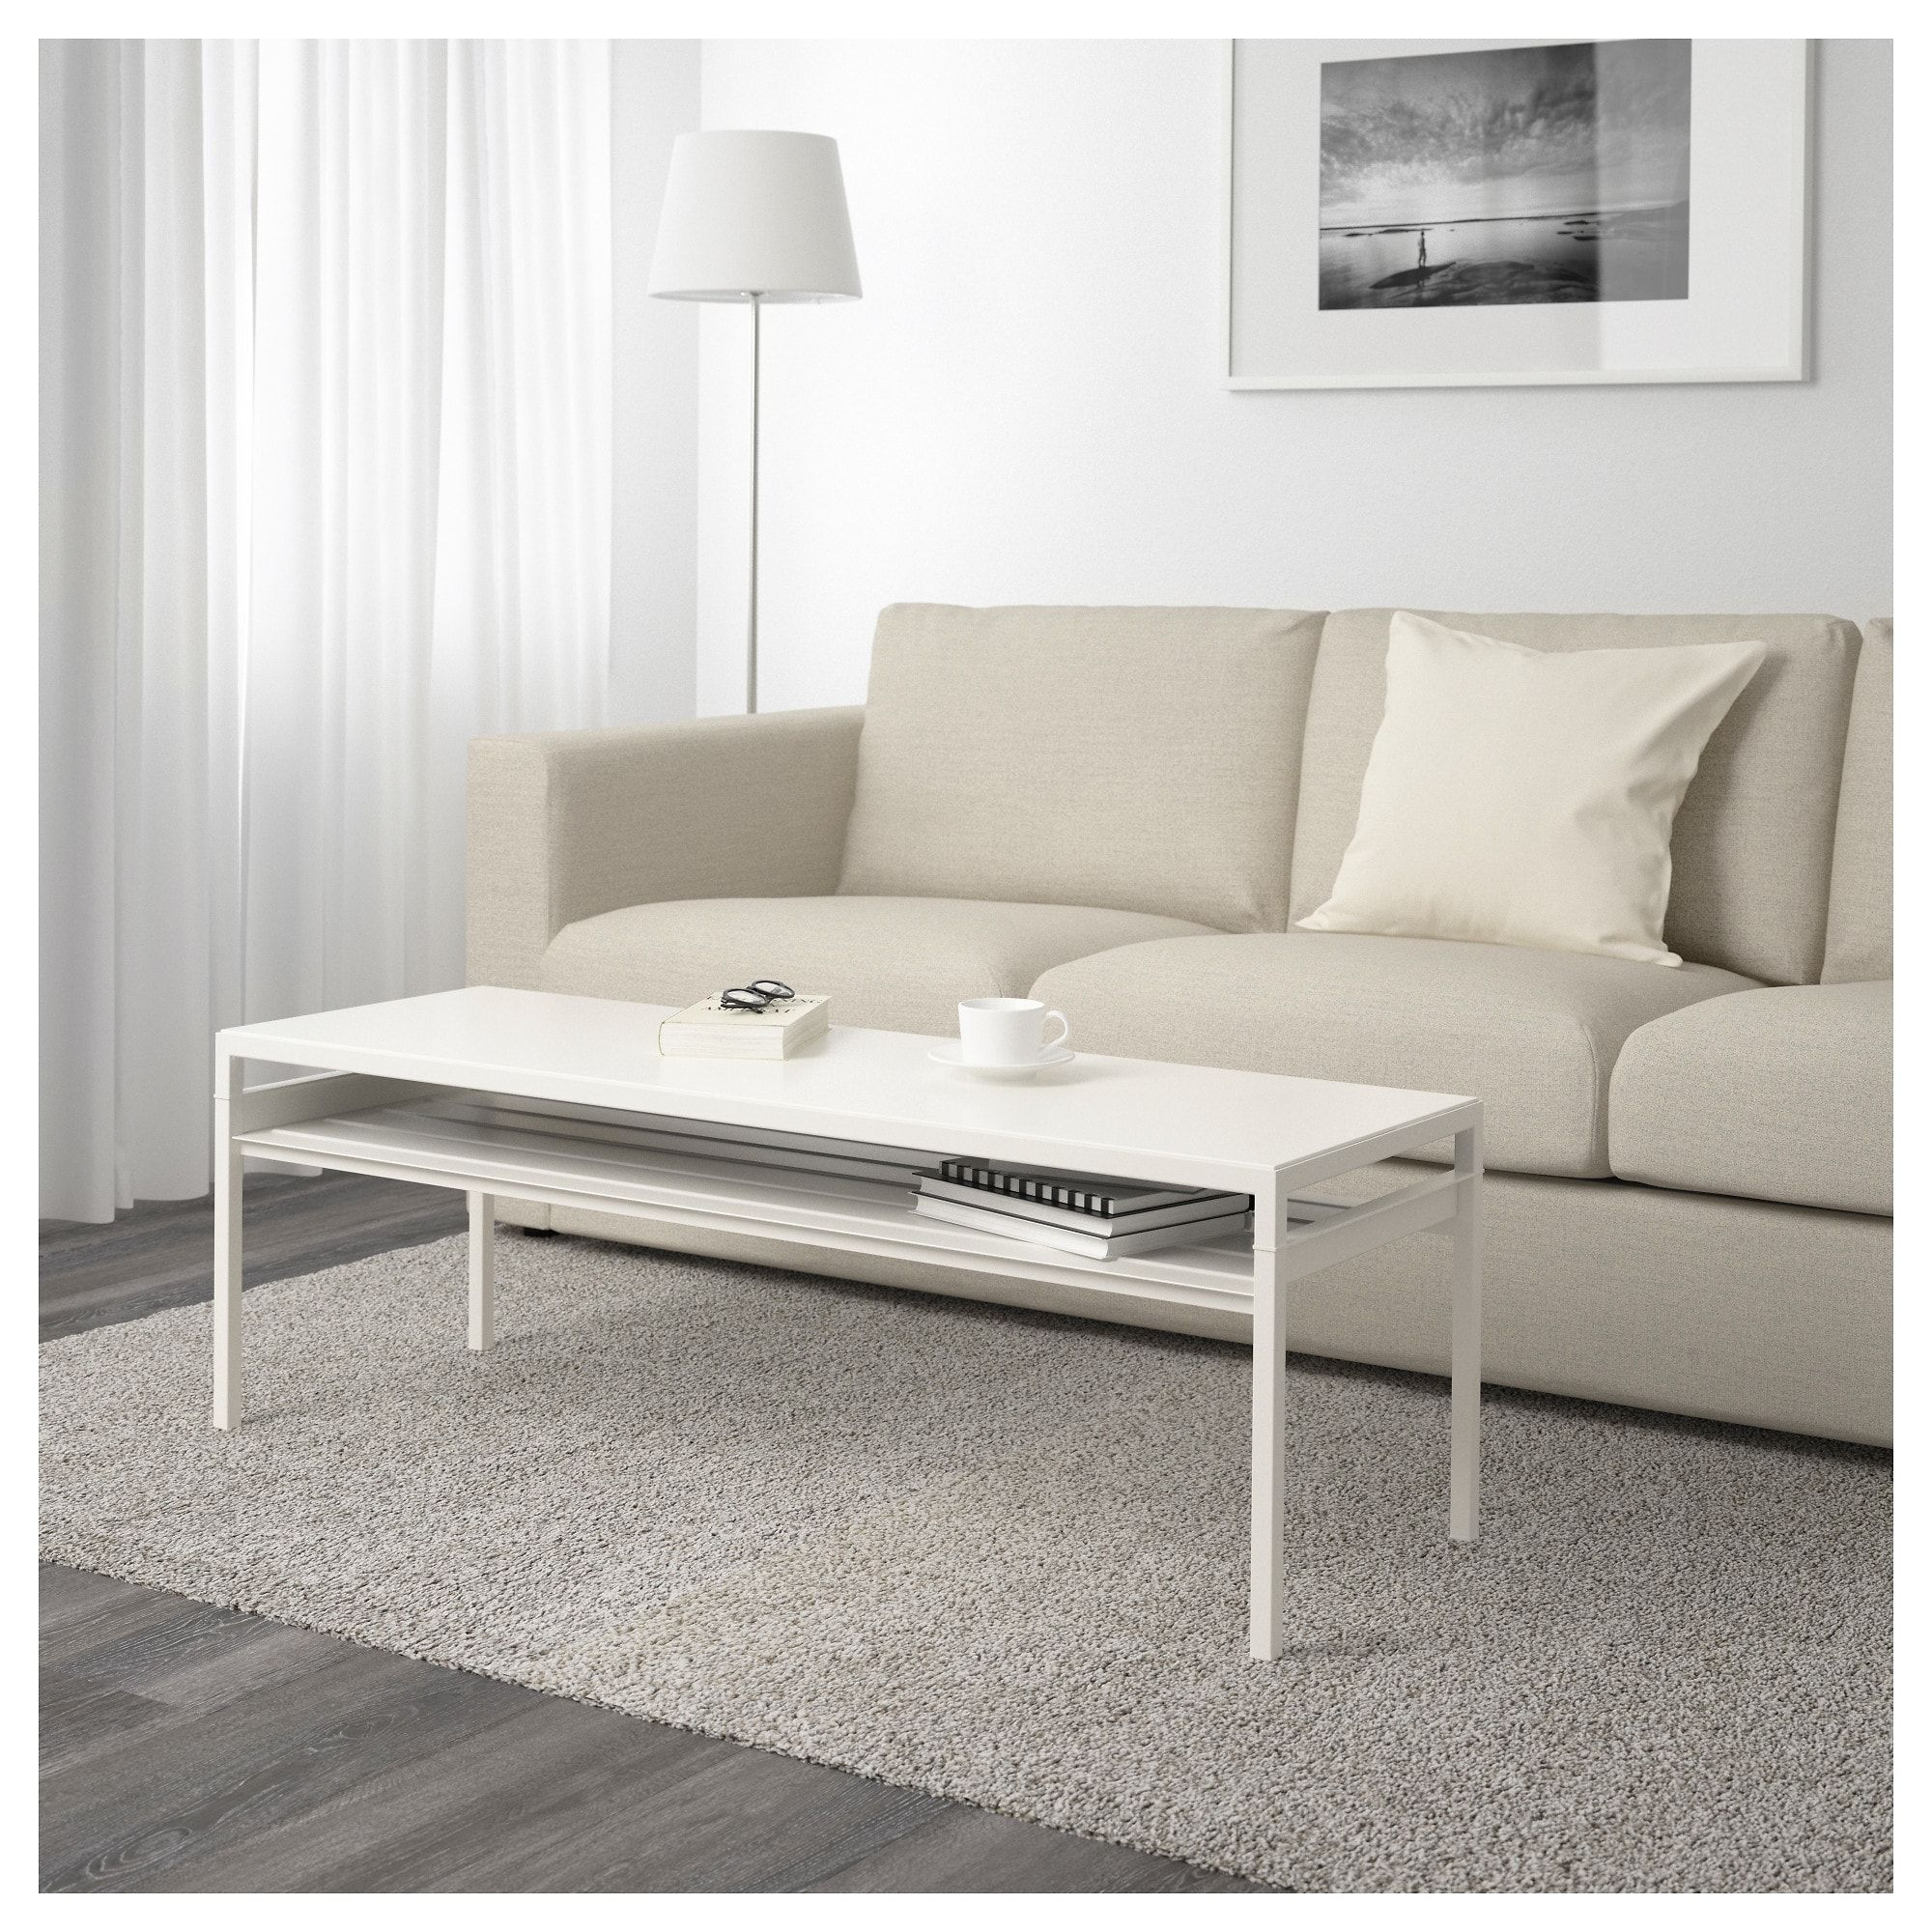 Table Console Ikea Nyboda Coffee Table W Reversible Table Top White Gray Sn Apt